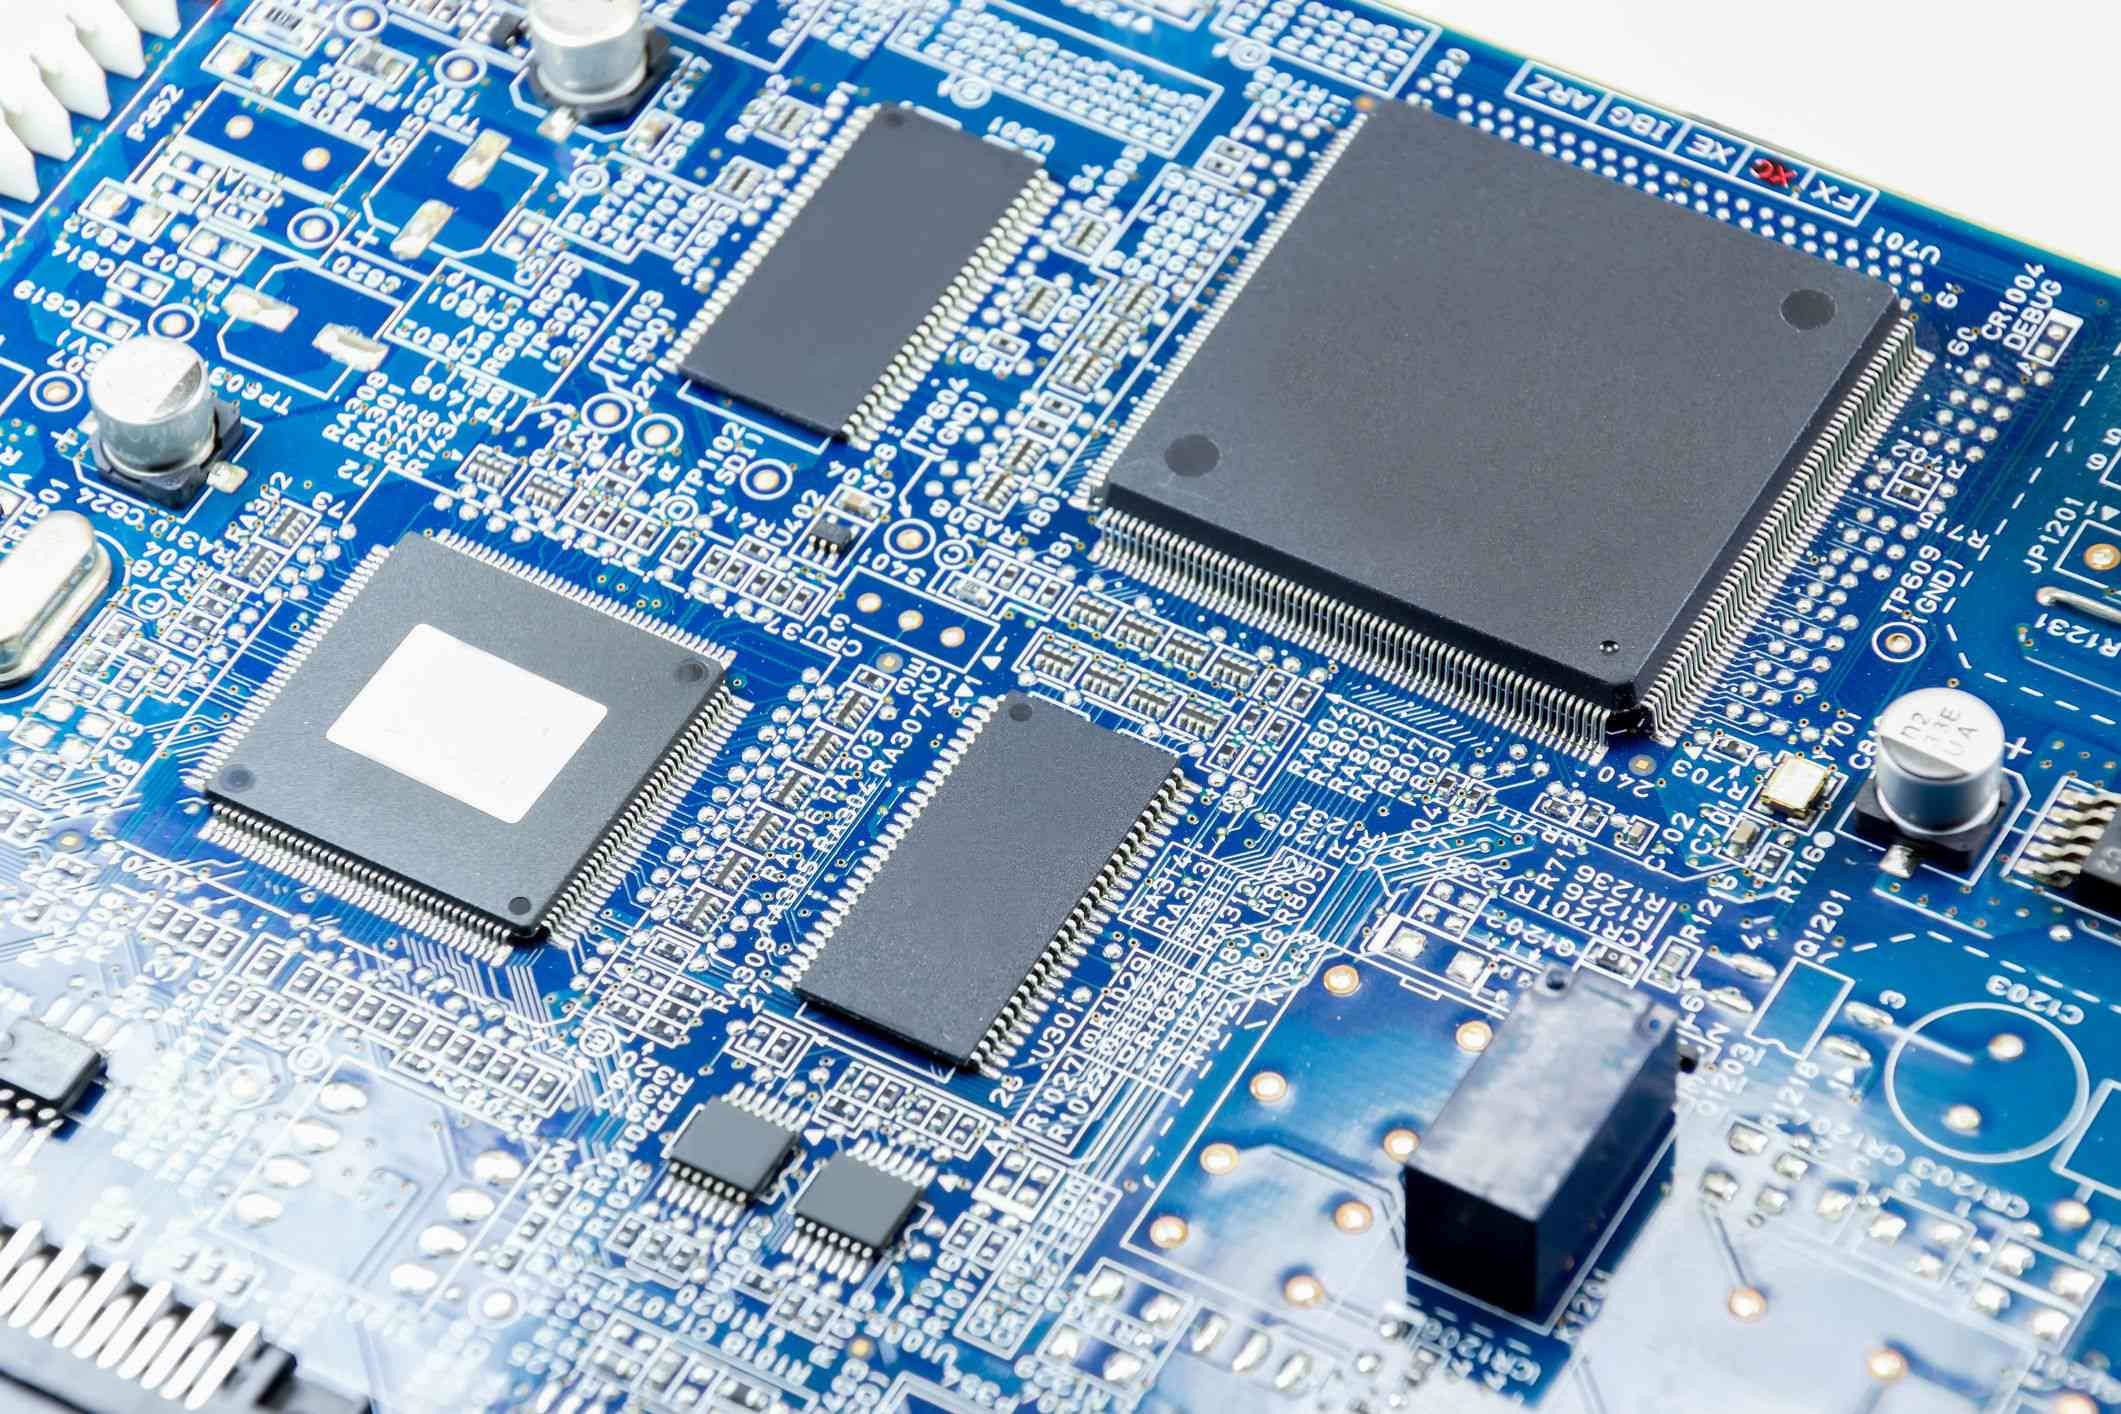 Image of a PC motherboard